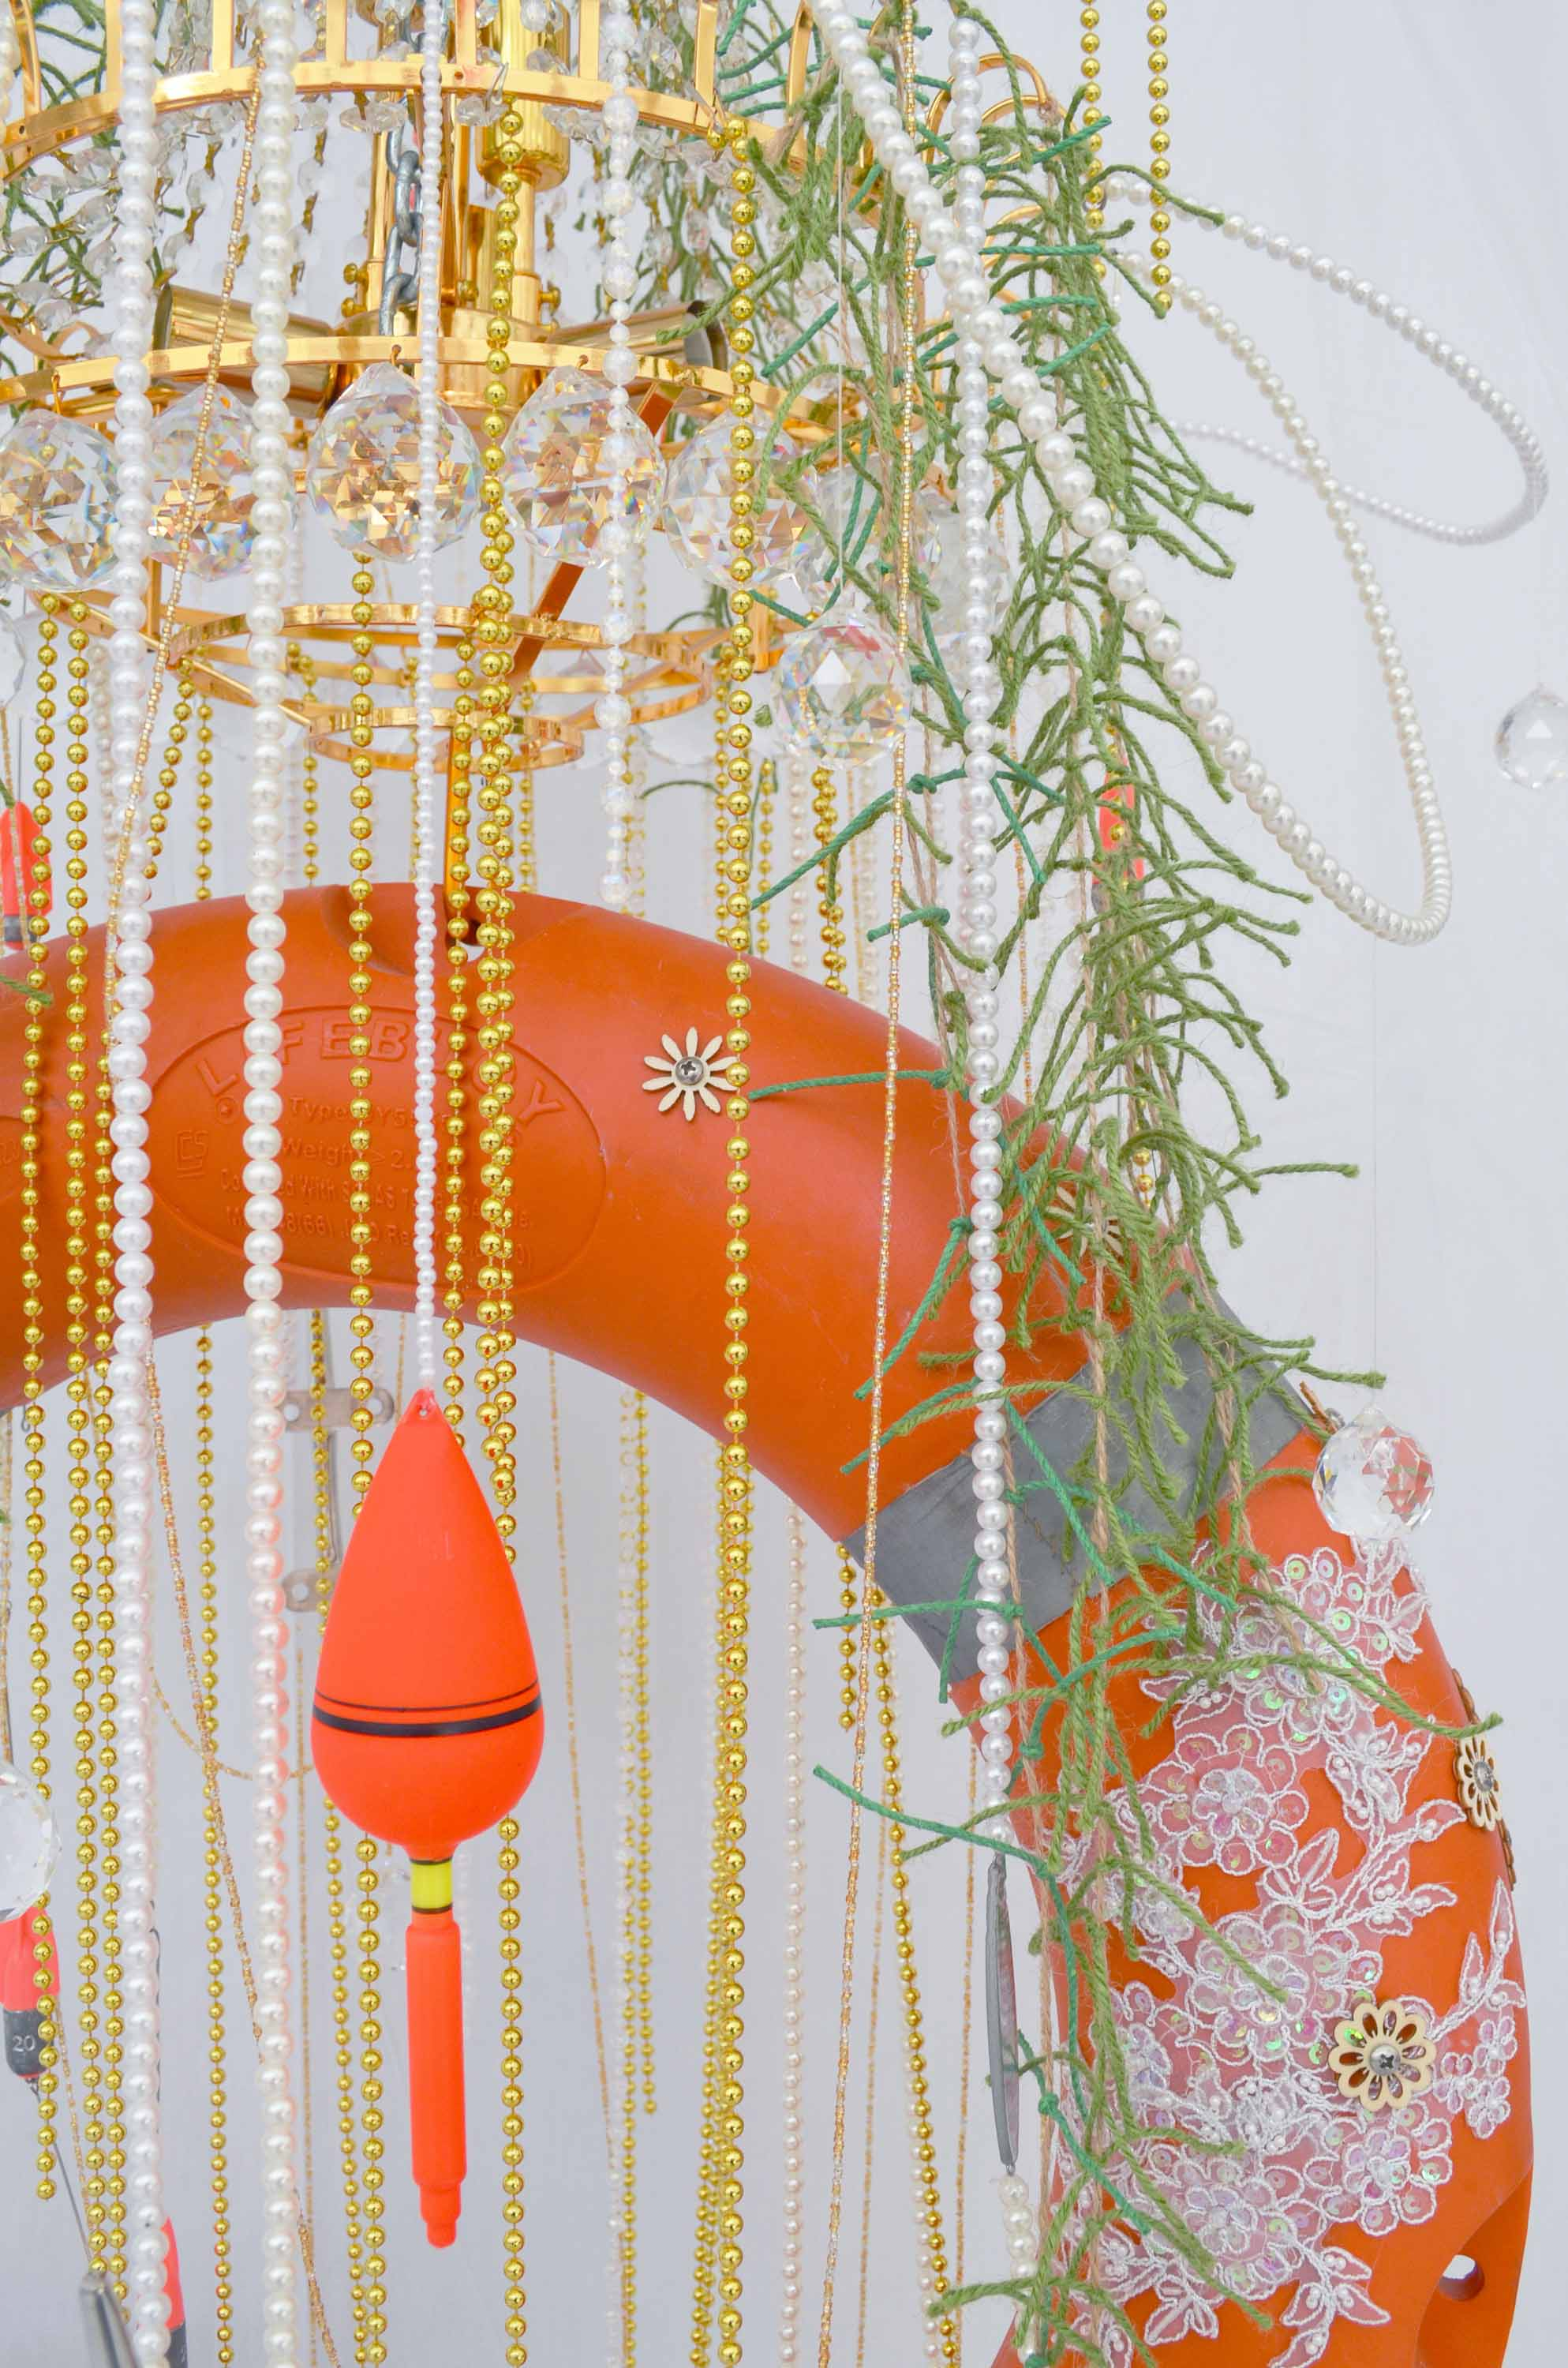 Khairullah Rahim, 'Silly Enamour' (detail), 2019, chandelier parts, Salvzburg travel guide collage on boat steering wheel, assorted faux pearls, metal hook, lifebuoy, boat cleat, propeller, fishing lure, sequined lace trim, laser cut wood, screw, chain, truss, concrete, silk flowers, 200 x 200cm. Image courtesy of the artist.